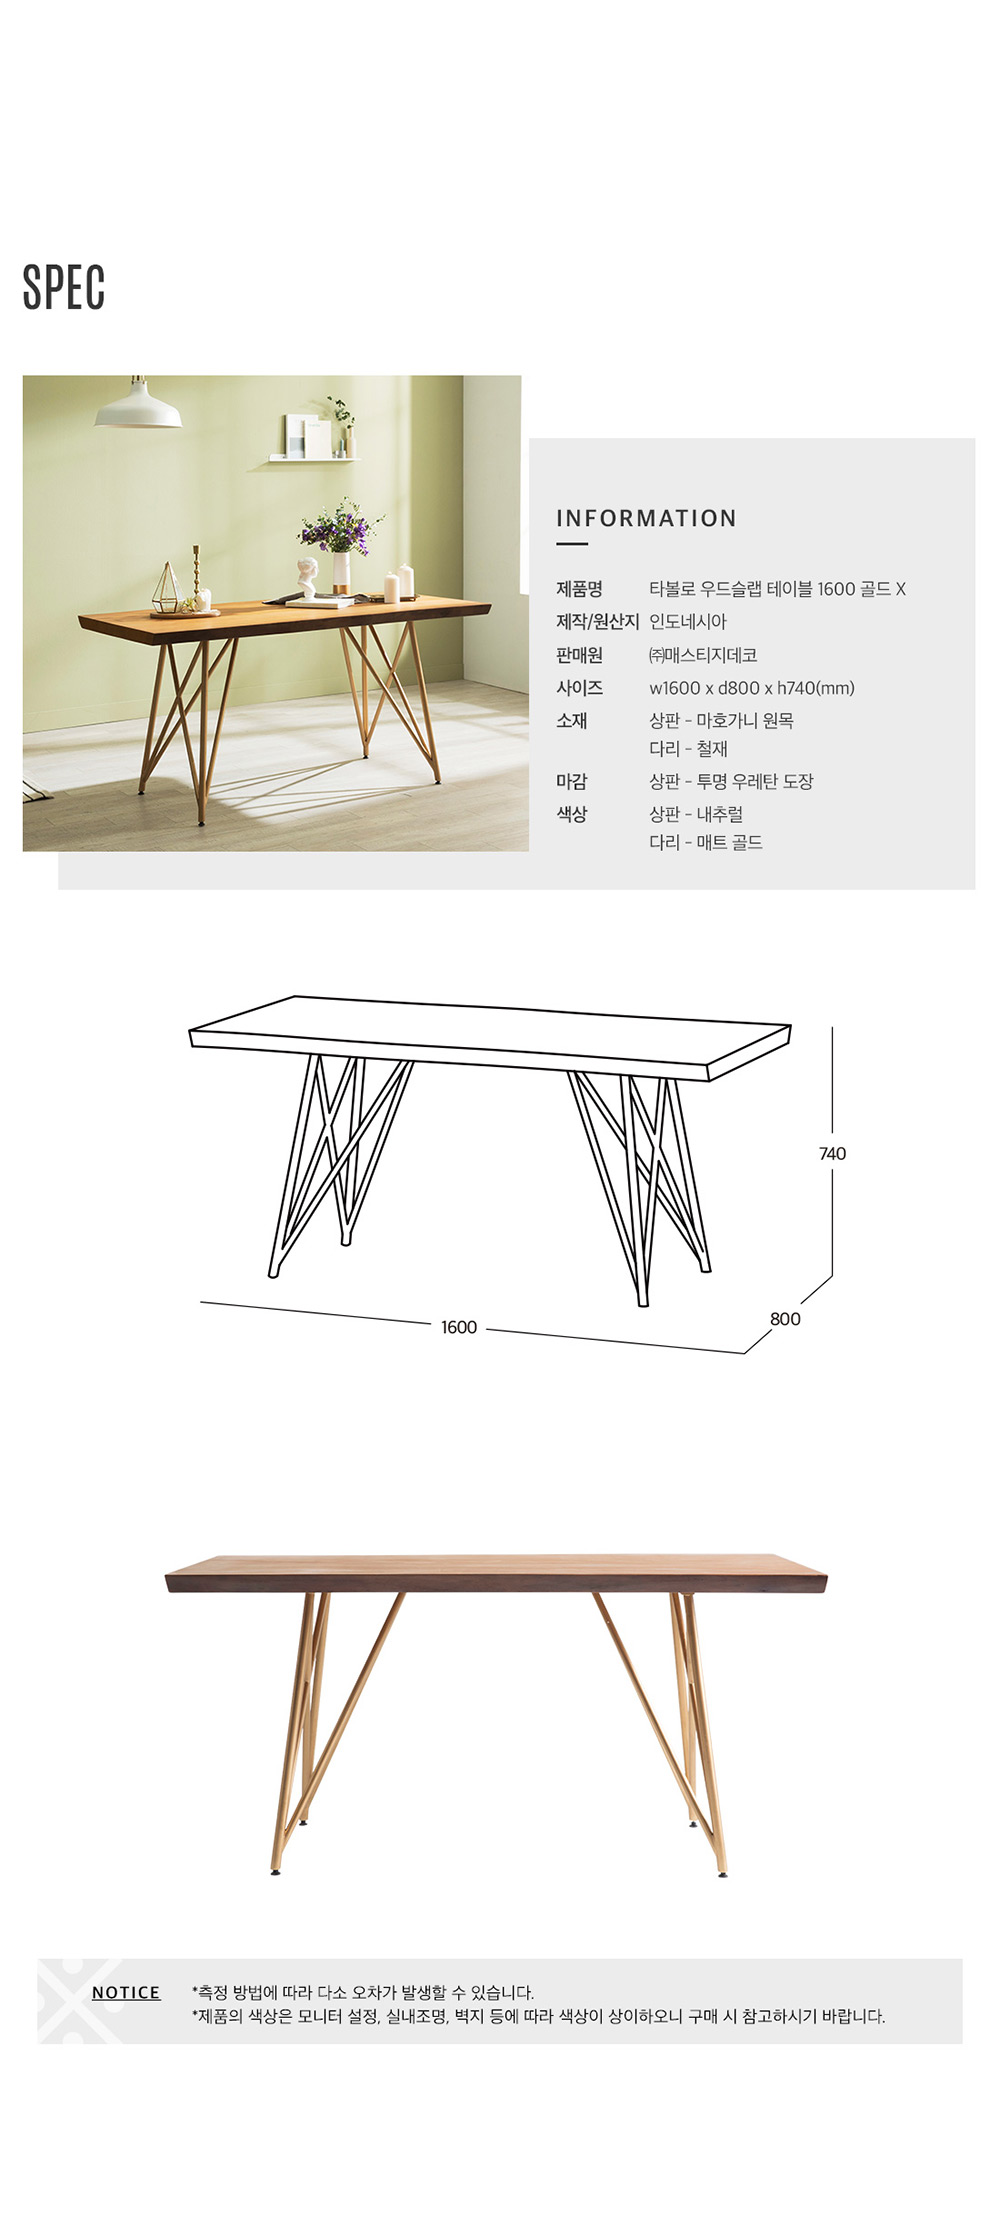 Tavolo_Scandinavian_Natural_Woodslab_Table_with_X_Legs_1600_(Gold)_Online_Furniture_Singapore_Specs_by_born_in_colour